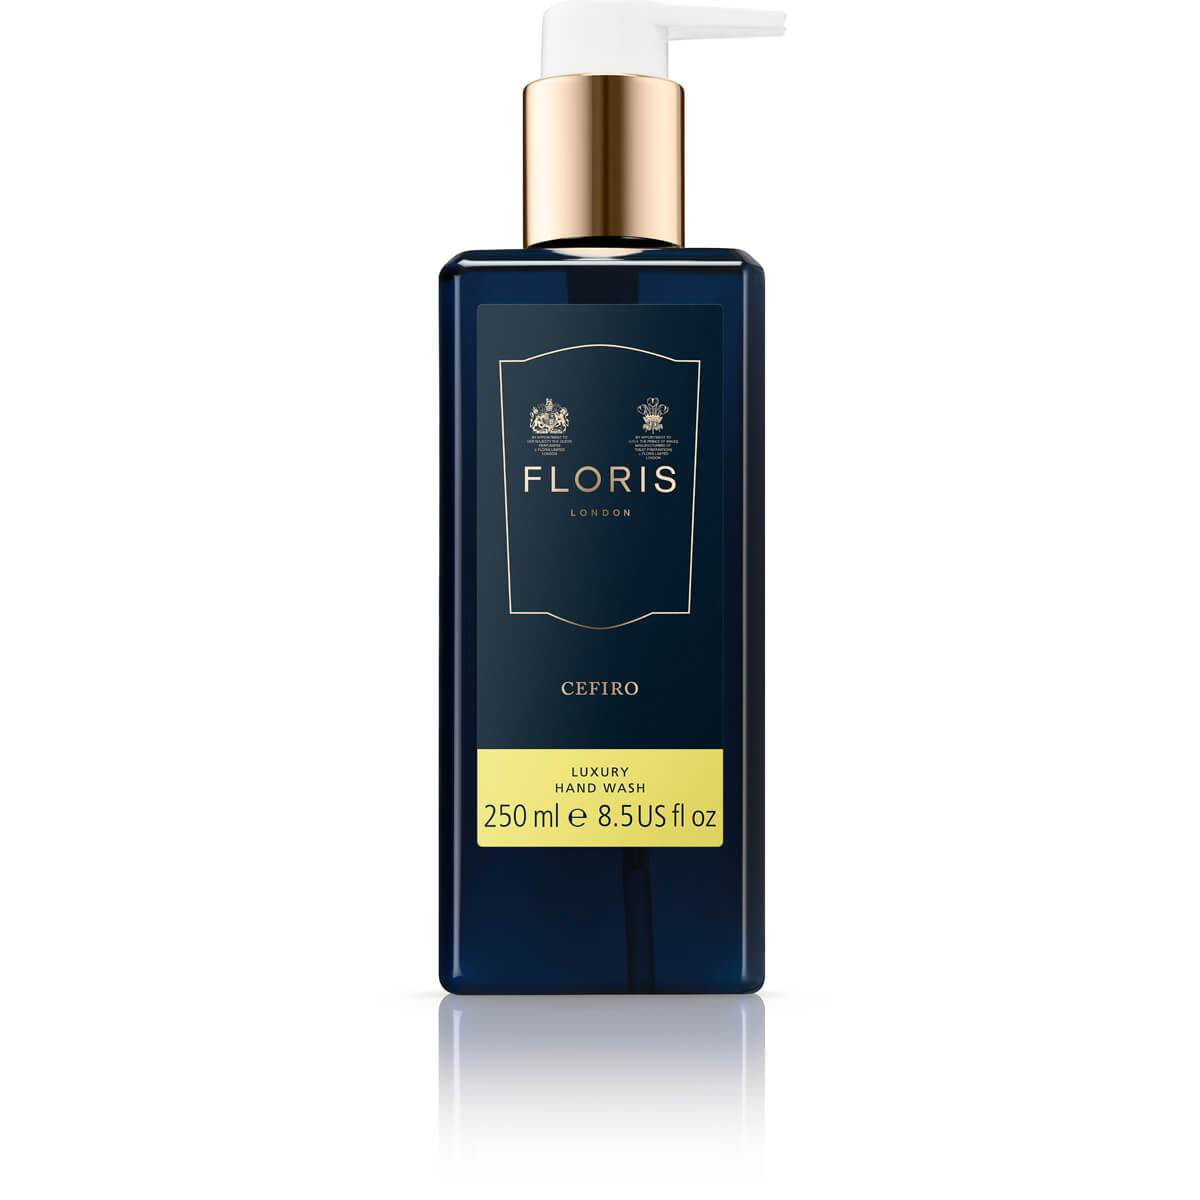 Cefiro - Luxury Hand Wash